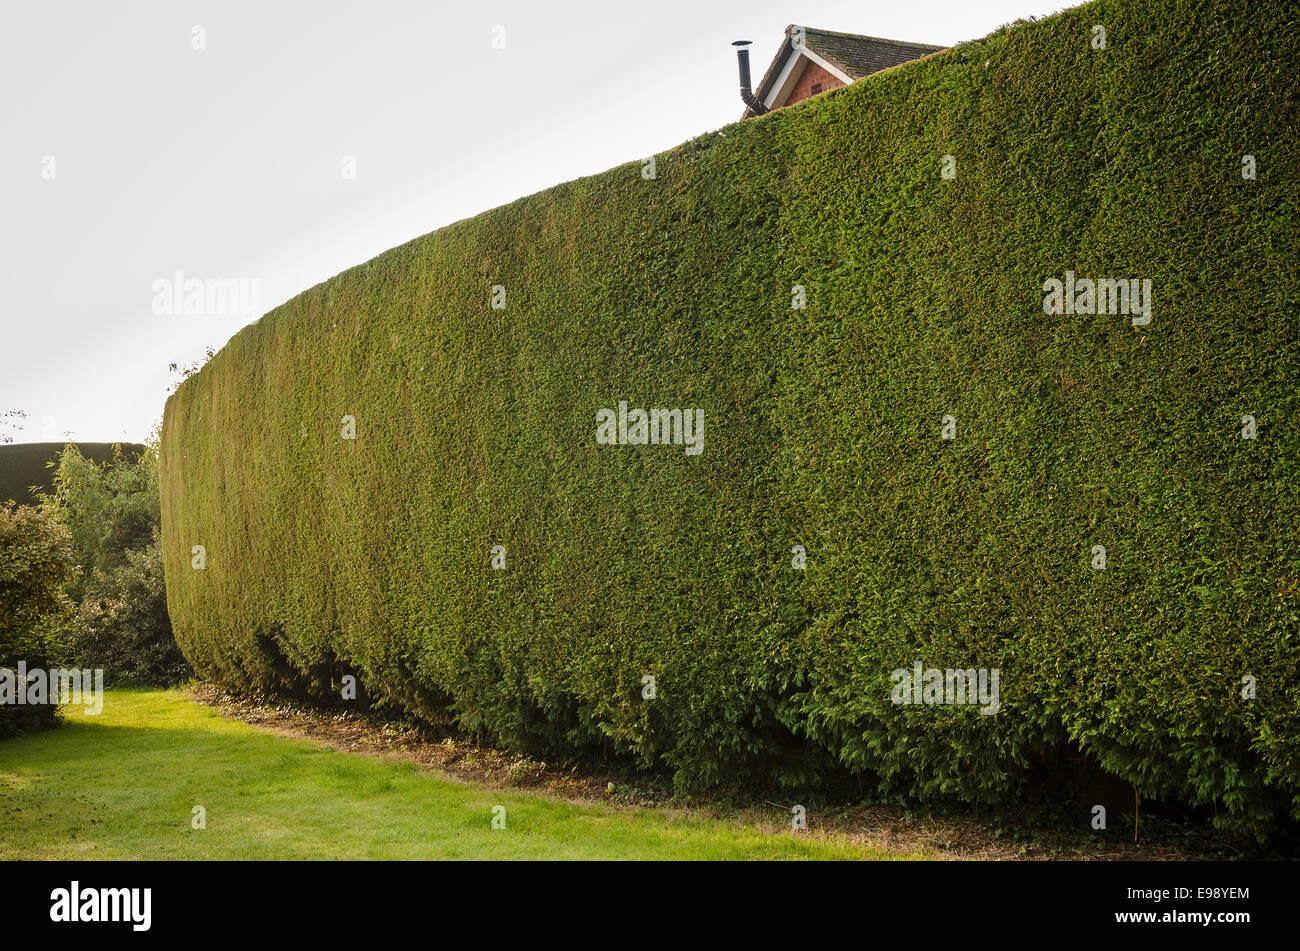 Tall evergreen conifer hedge after annual maintence obscuring unwanted view Stock Photo